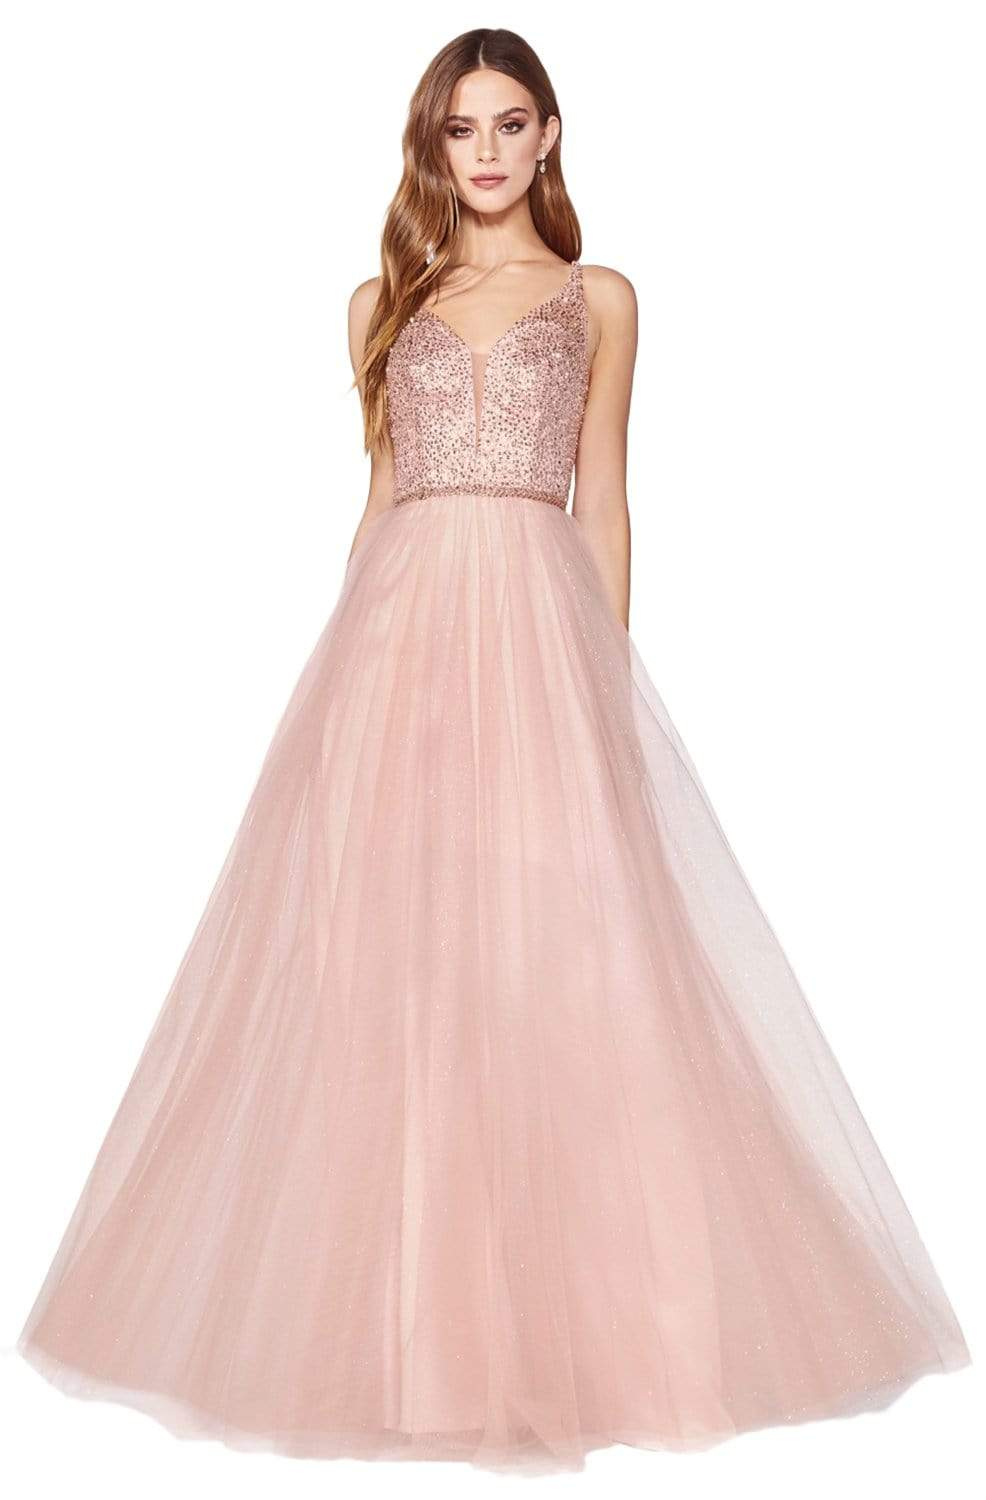 Cinderella Divine - CD0150 Beaded Sleeveless Glitter Tulle A-Line Dress Prom Dresses XXS / Blush